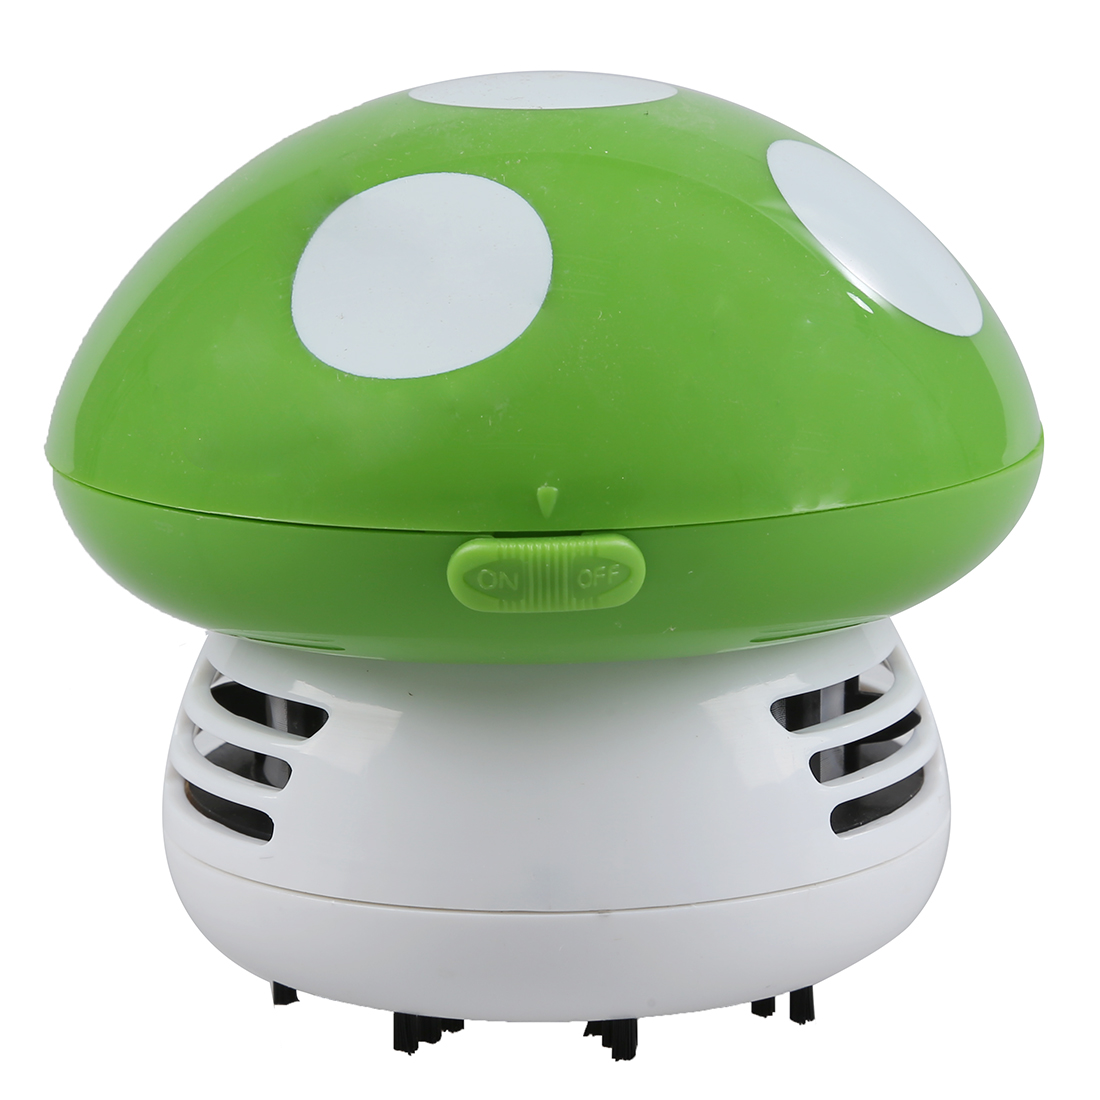 New Home Handheld Mushroom Shaped Mini Vacuum Cleaner Car Laptop keyboard Desktop Dust cleaner-green mint planner